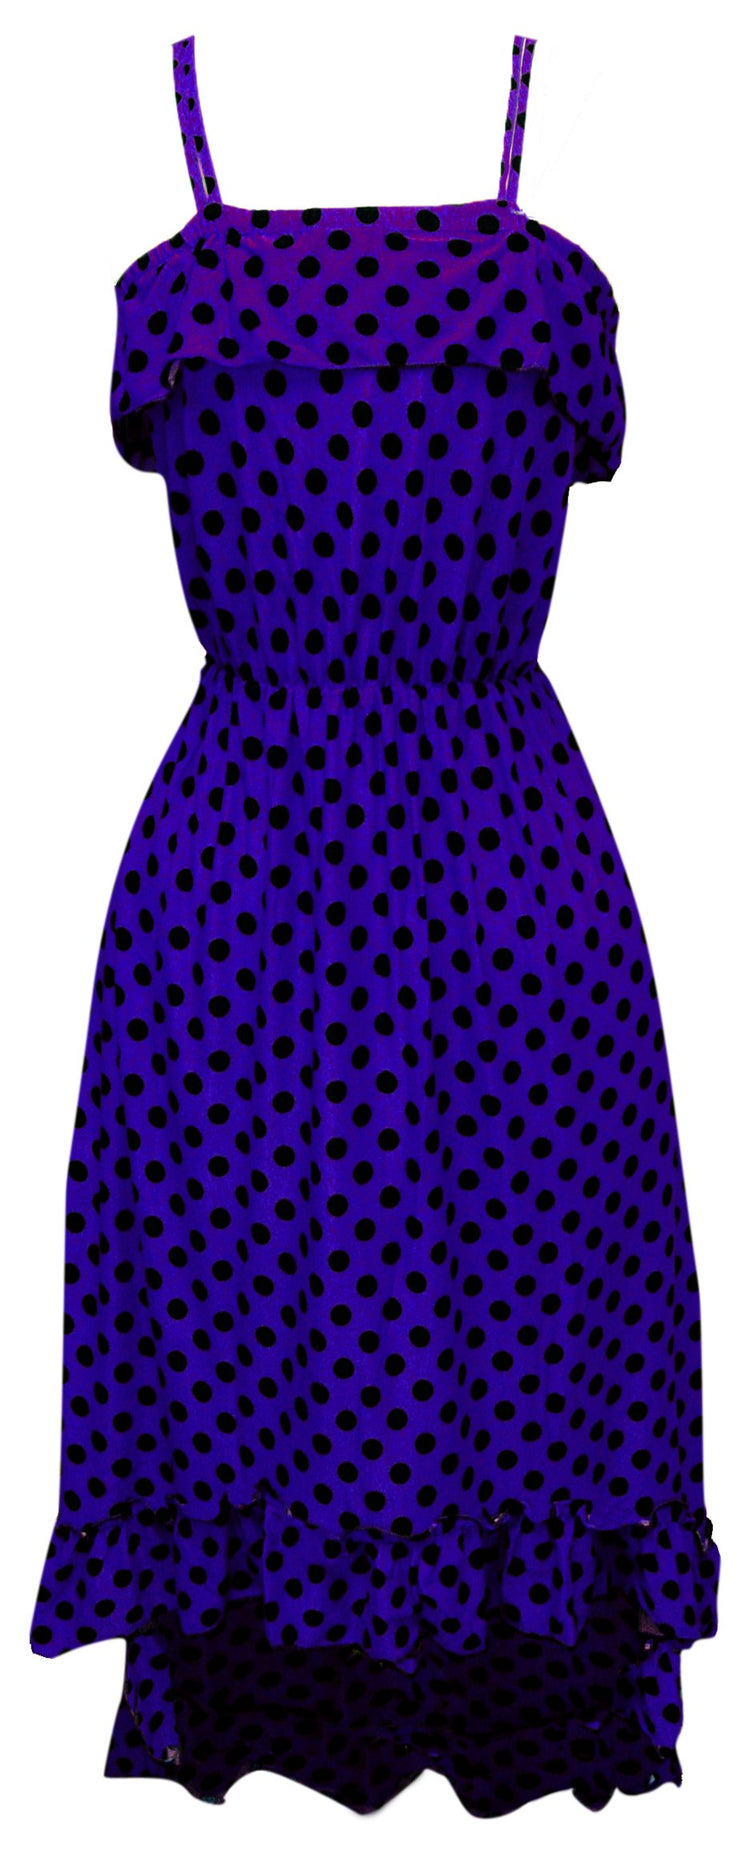 A1279-PolkaDot-Maxi-Dress-Viol-BLK-S-SM